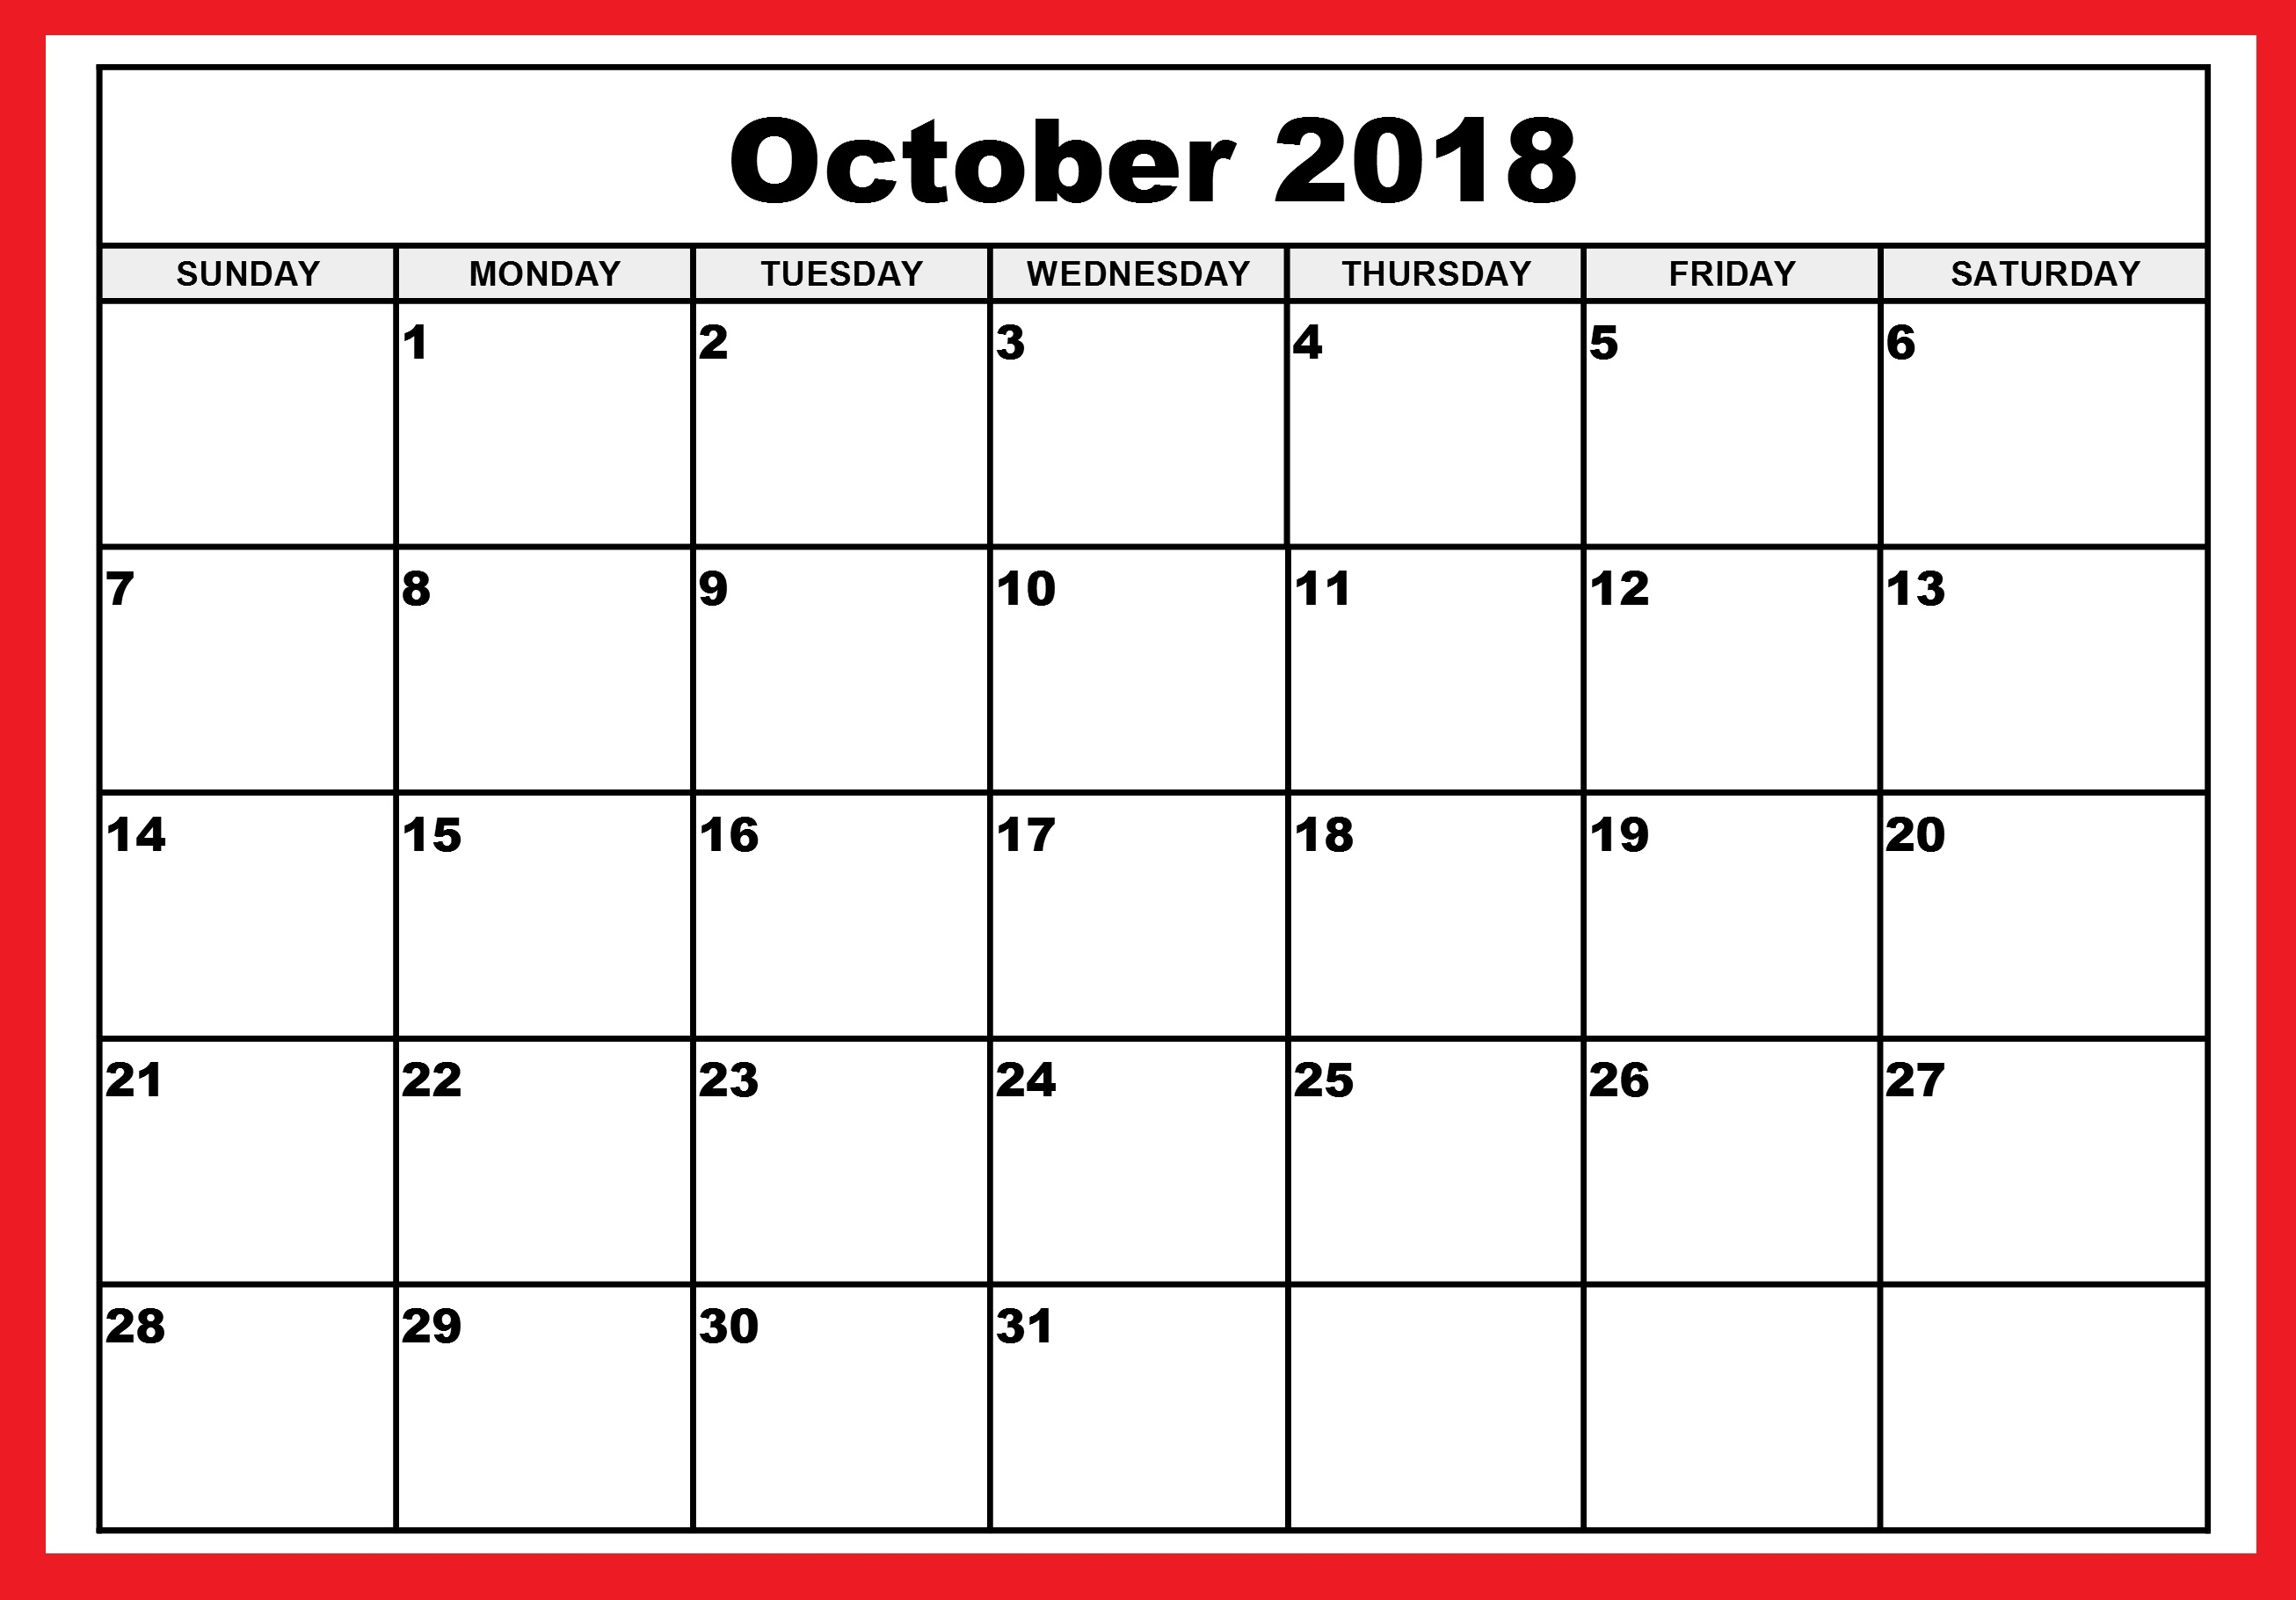 october 2018 calendar october 2018 printable calendar october Free October 2018 Calendar Word Document erdferdf